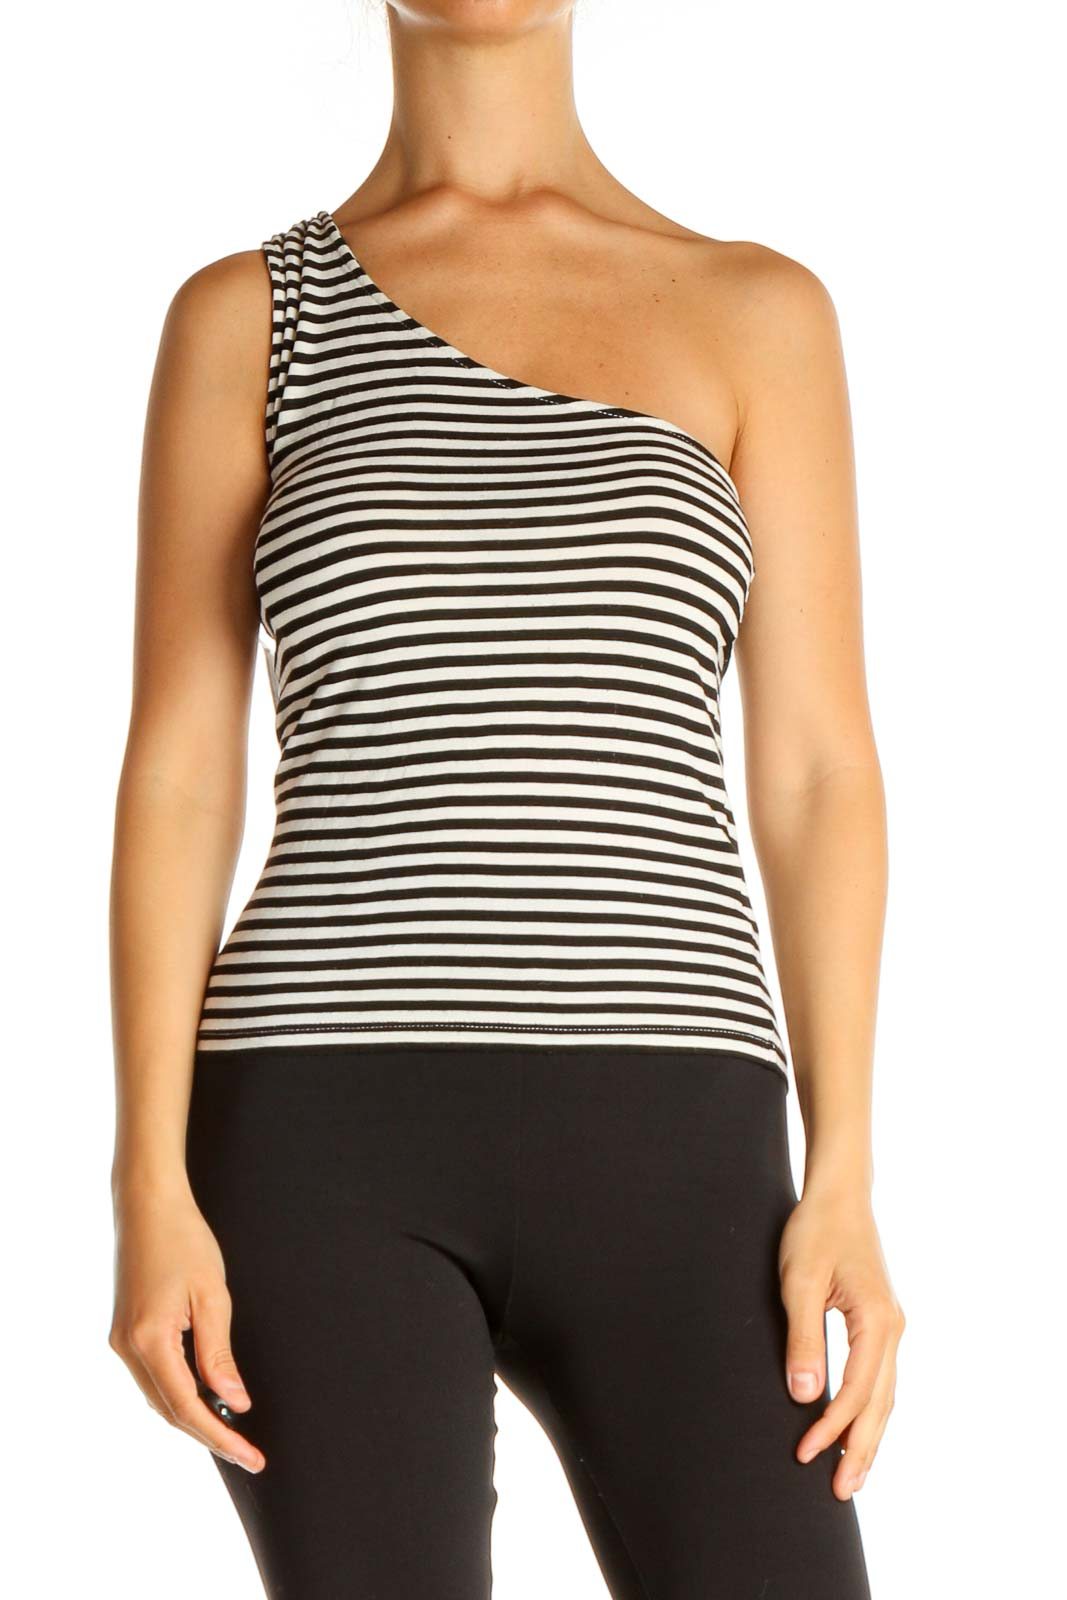 Beige Striped All Day Wear Tank Top Front